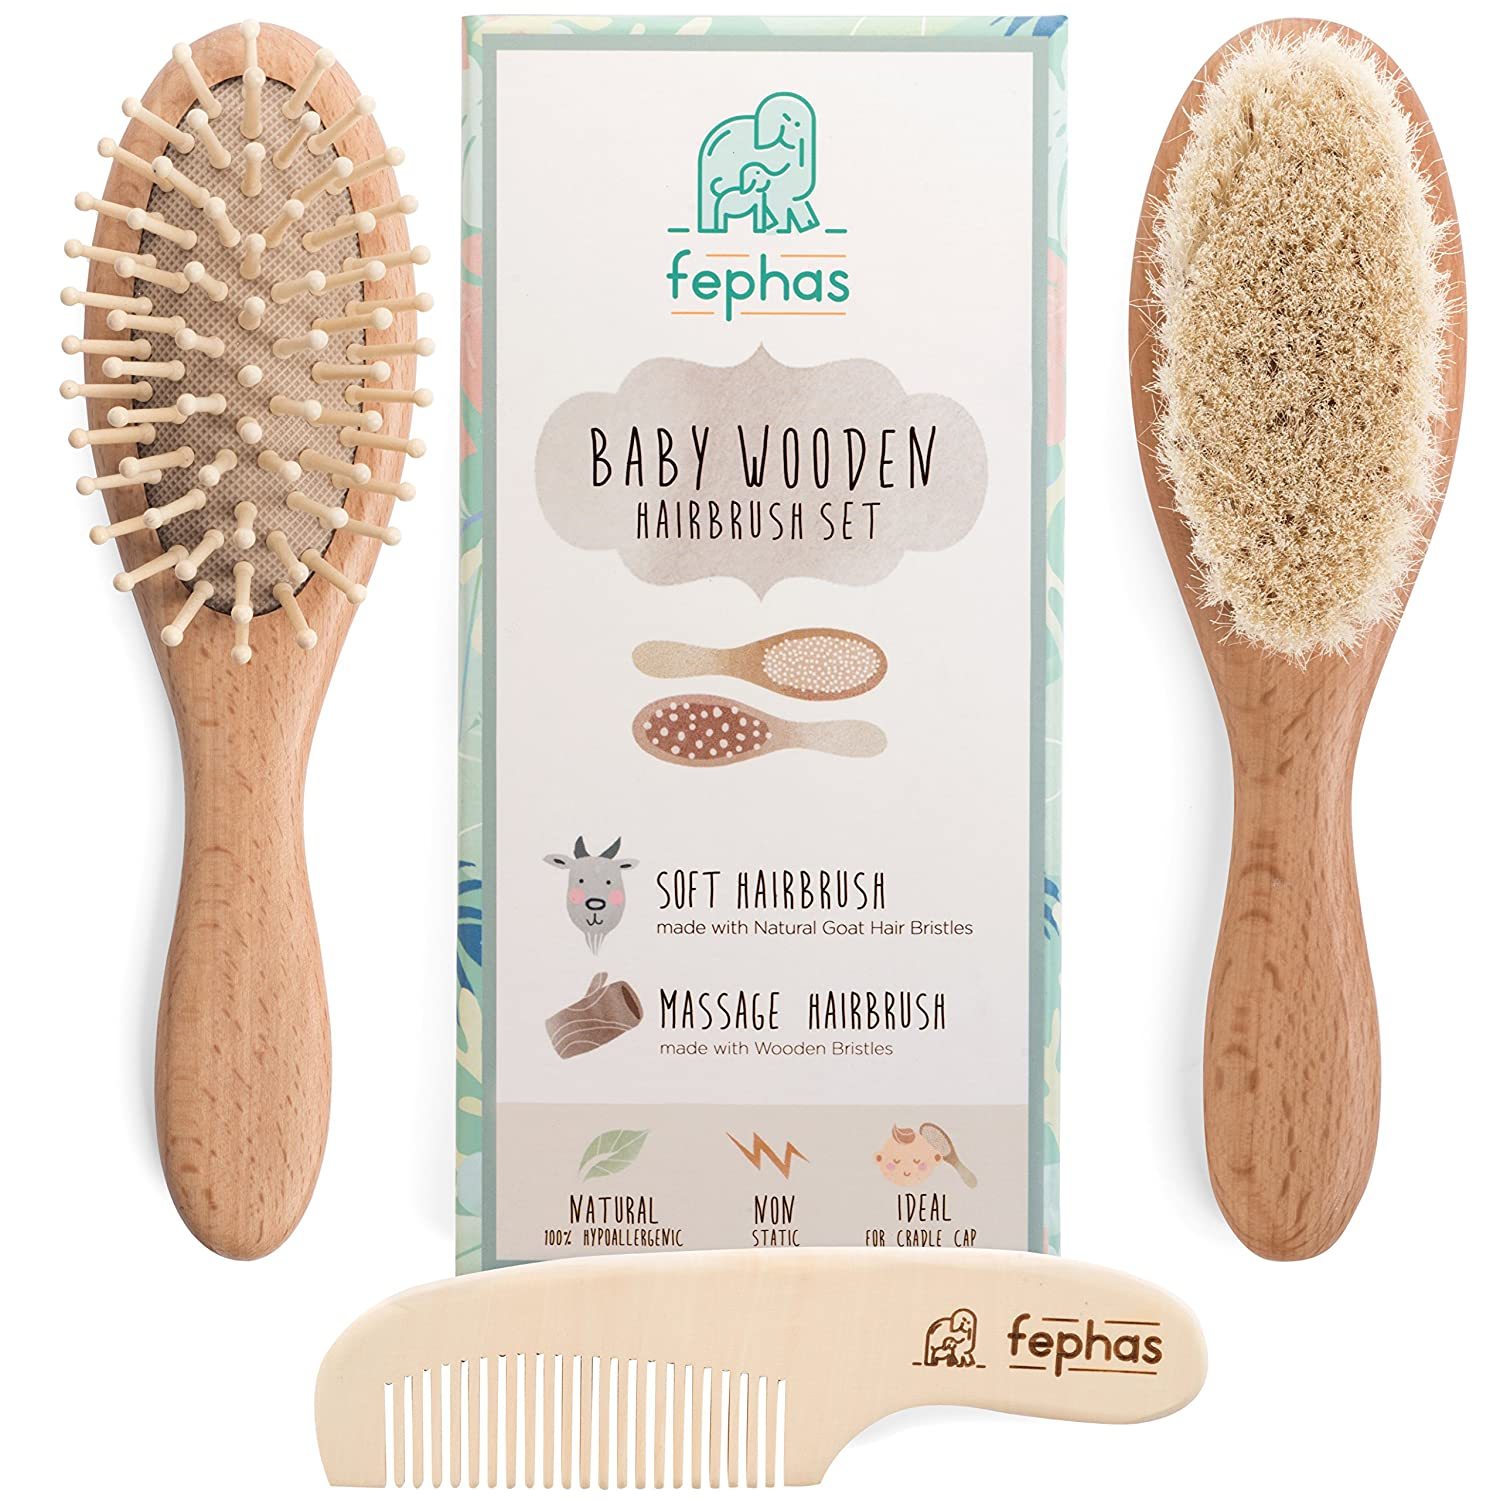 Wooden Baby Hair Brush and Comb Set| Eco friendly Hairbrush Kit for Newborn and Toddler features Organic Soft Goat Hair for Cradle Cap- Natural Wood Bristles Brush| Ideal for Baby Registry/Shower Gift fephas